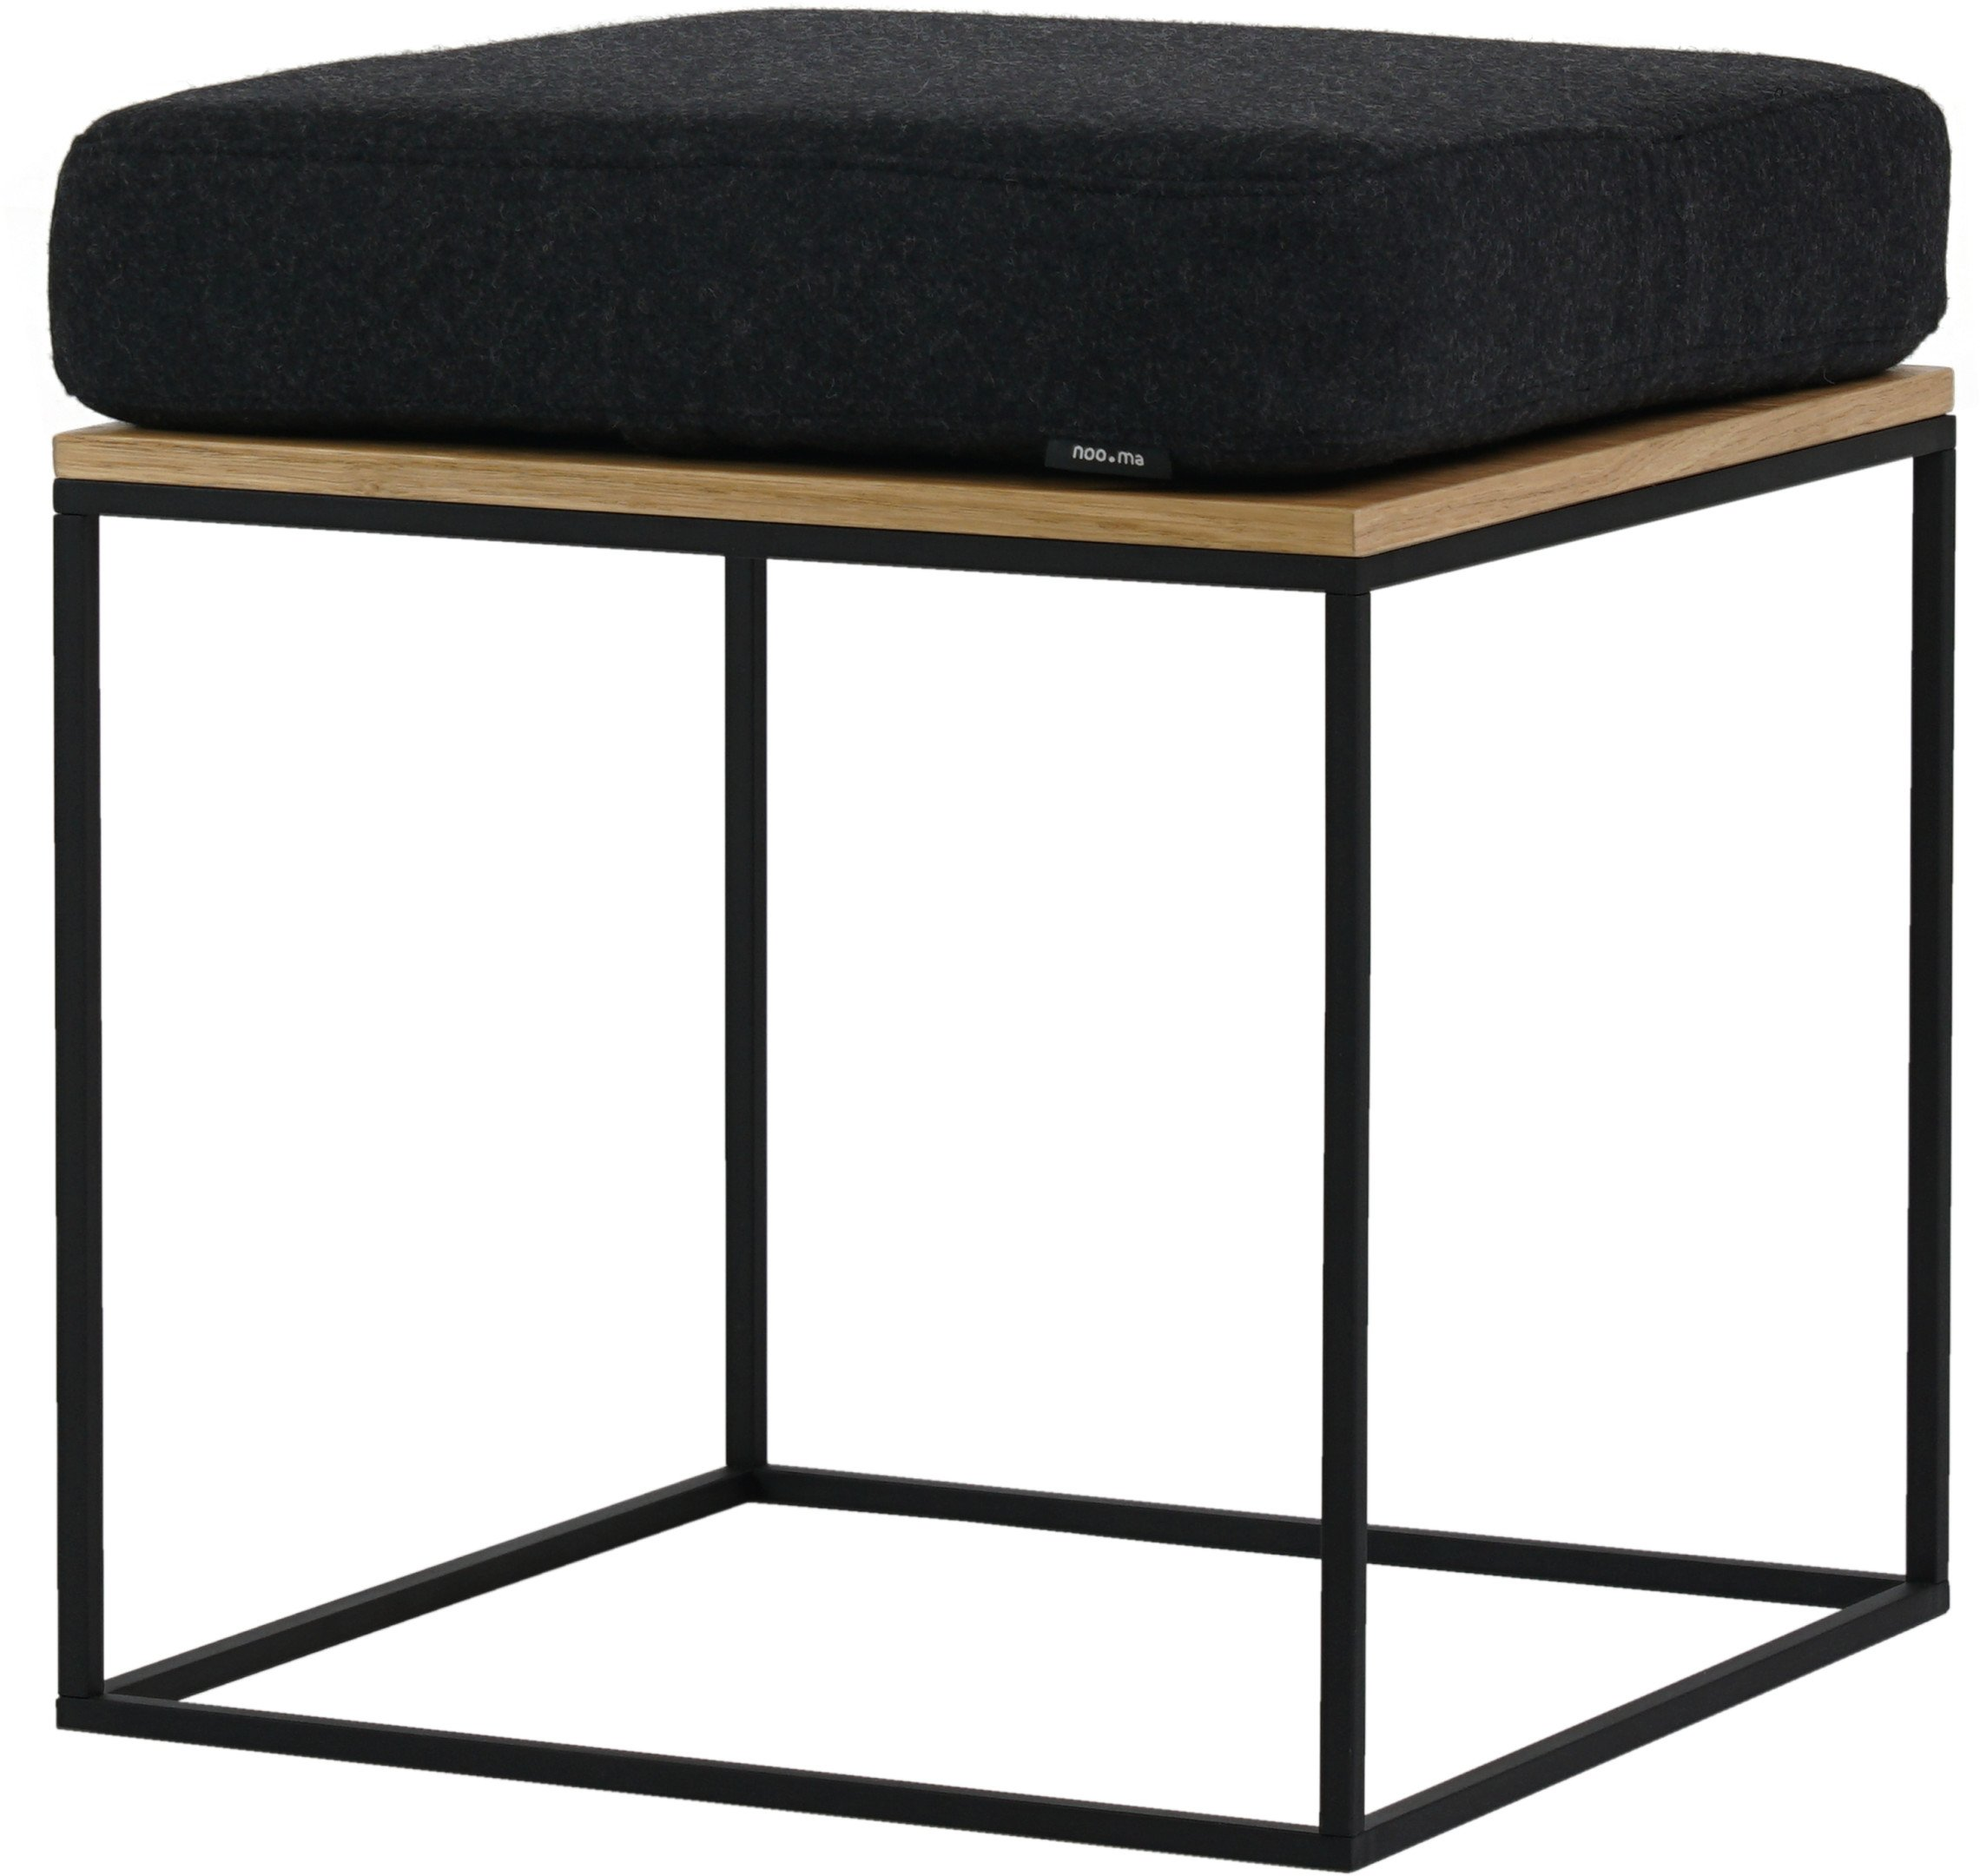 Feo Pouf Black with Oak Veneer, noo.ma